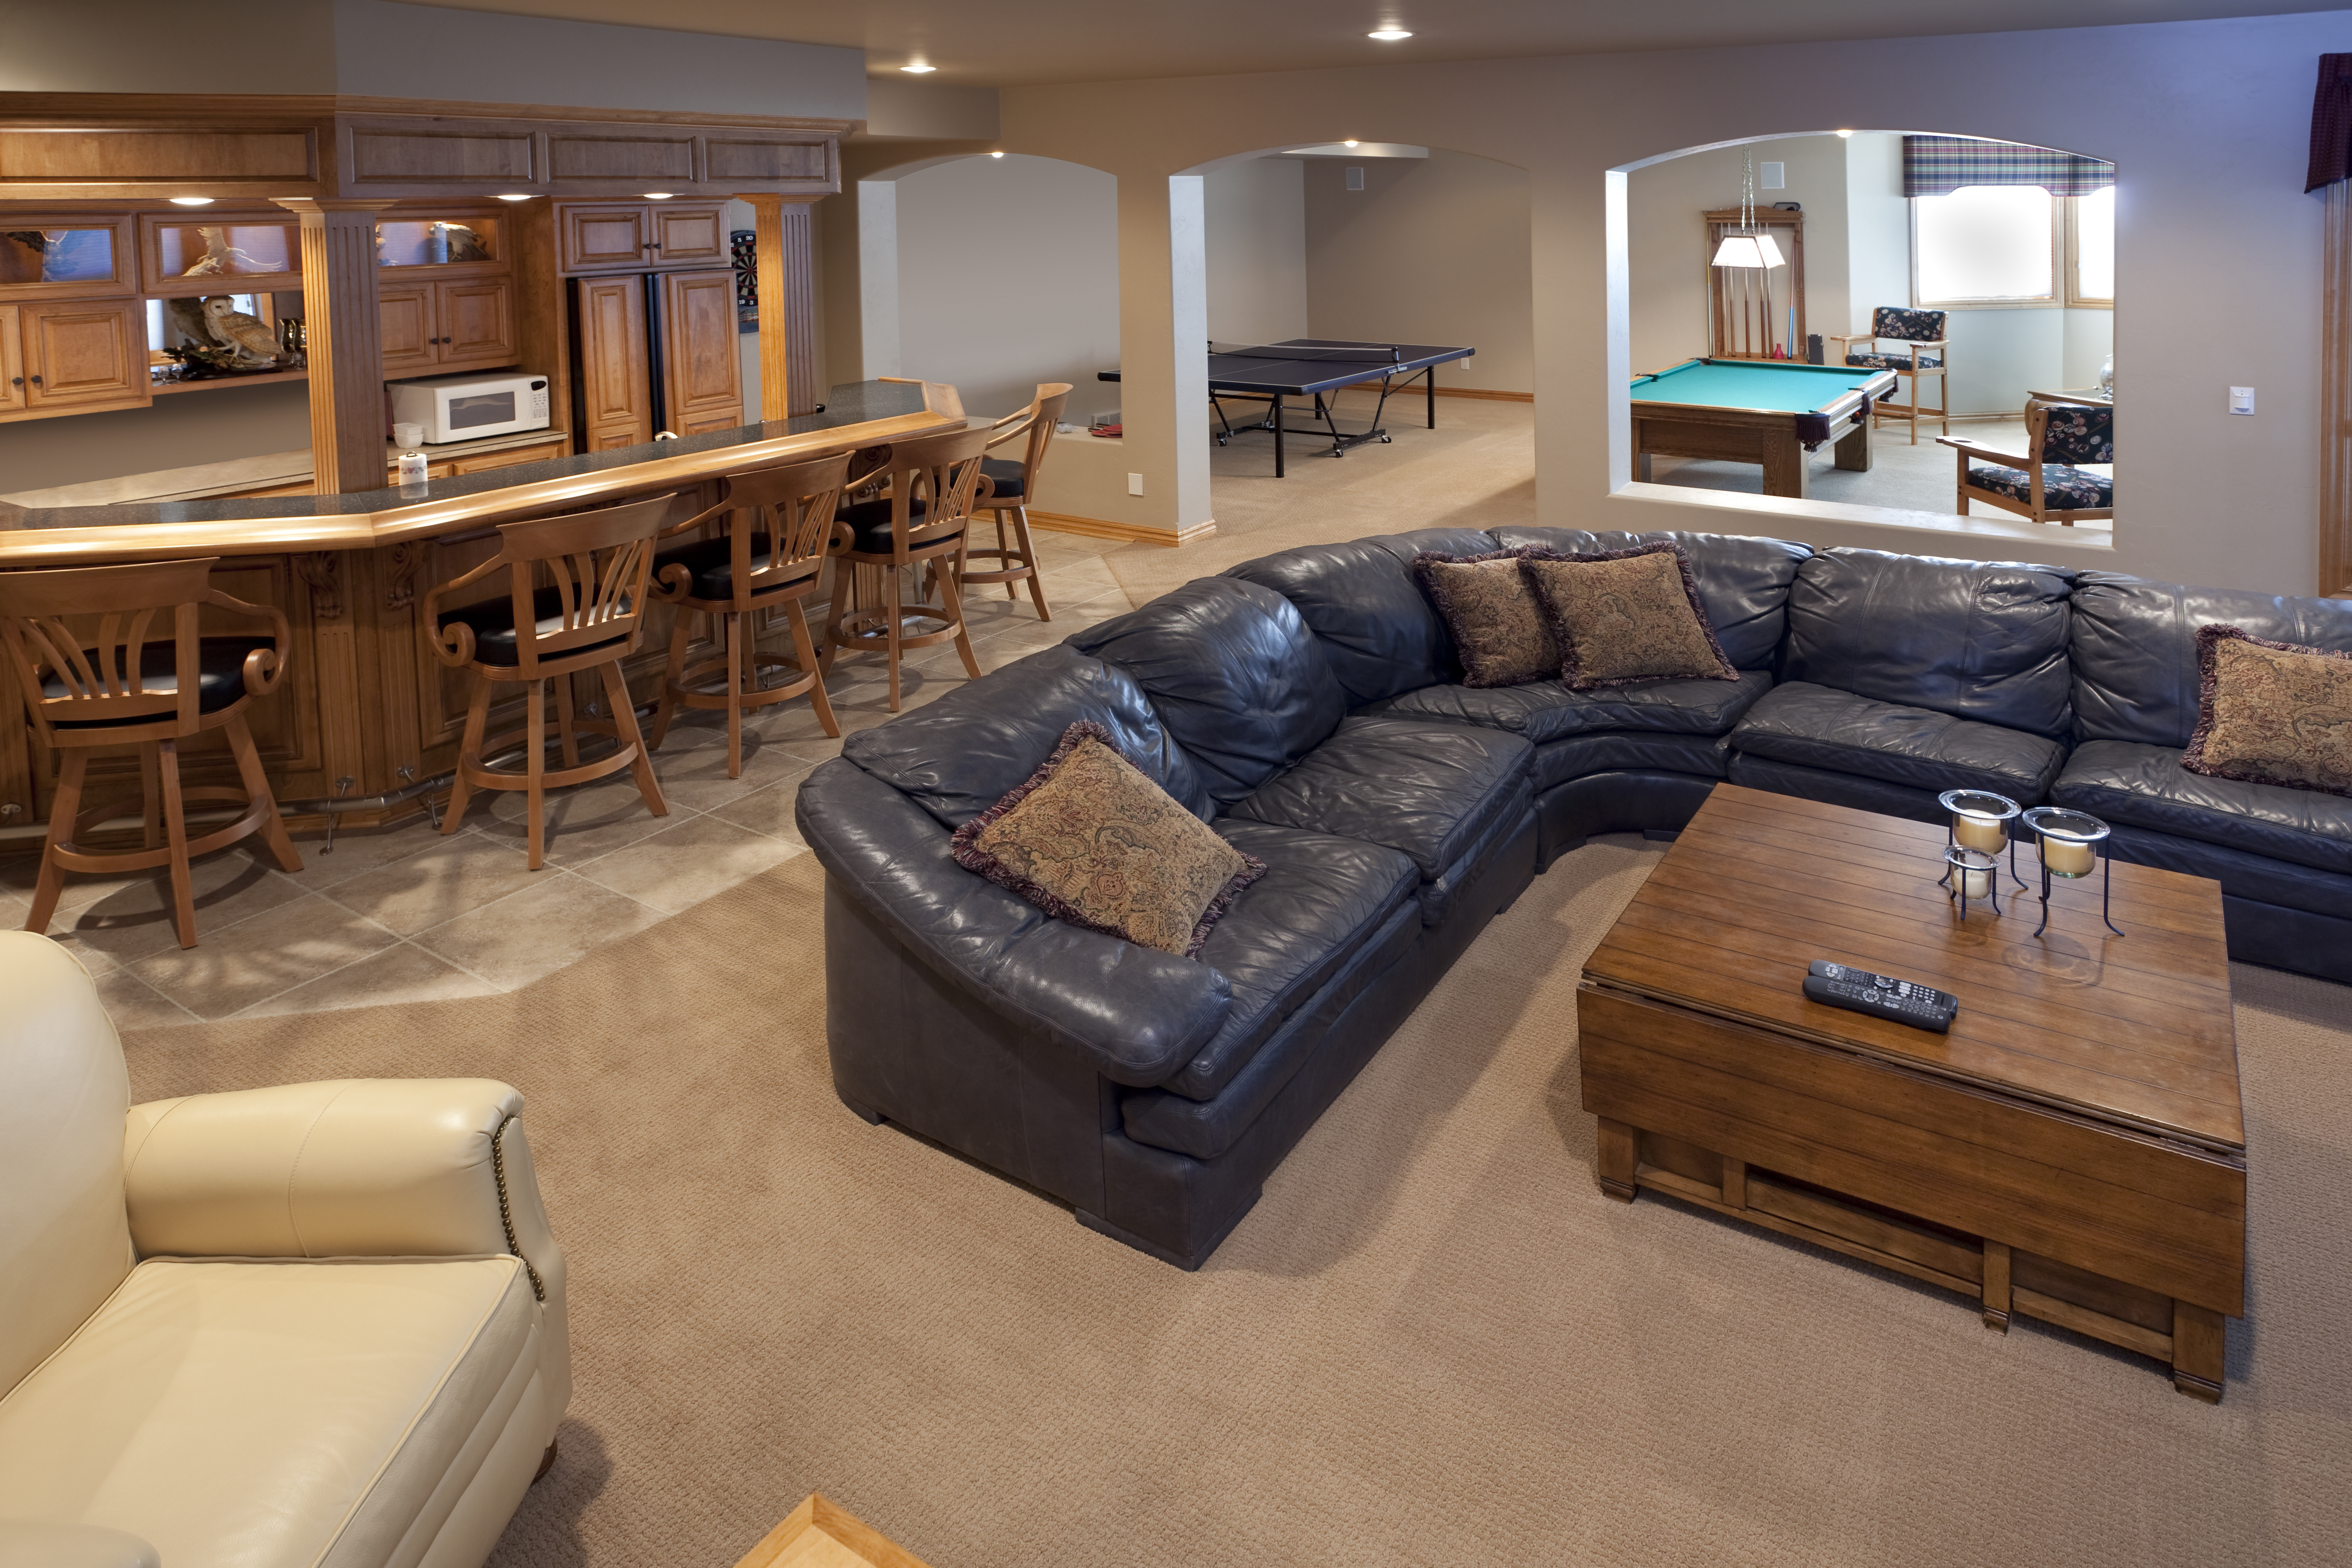 Can I Gain Equity By Finishing My Basement Budgeting Money